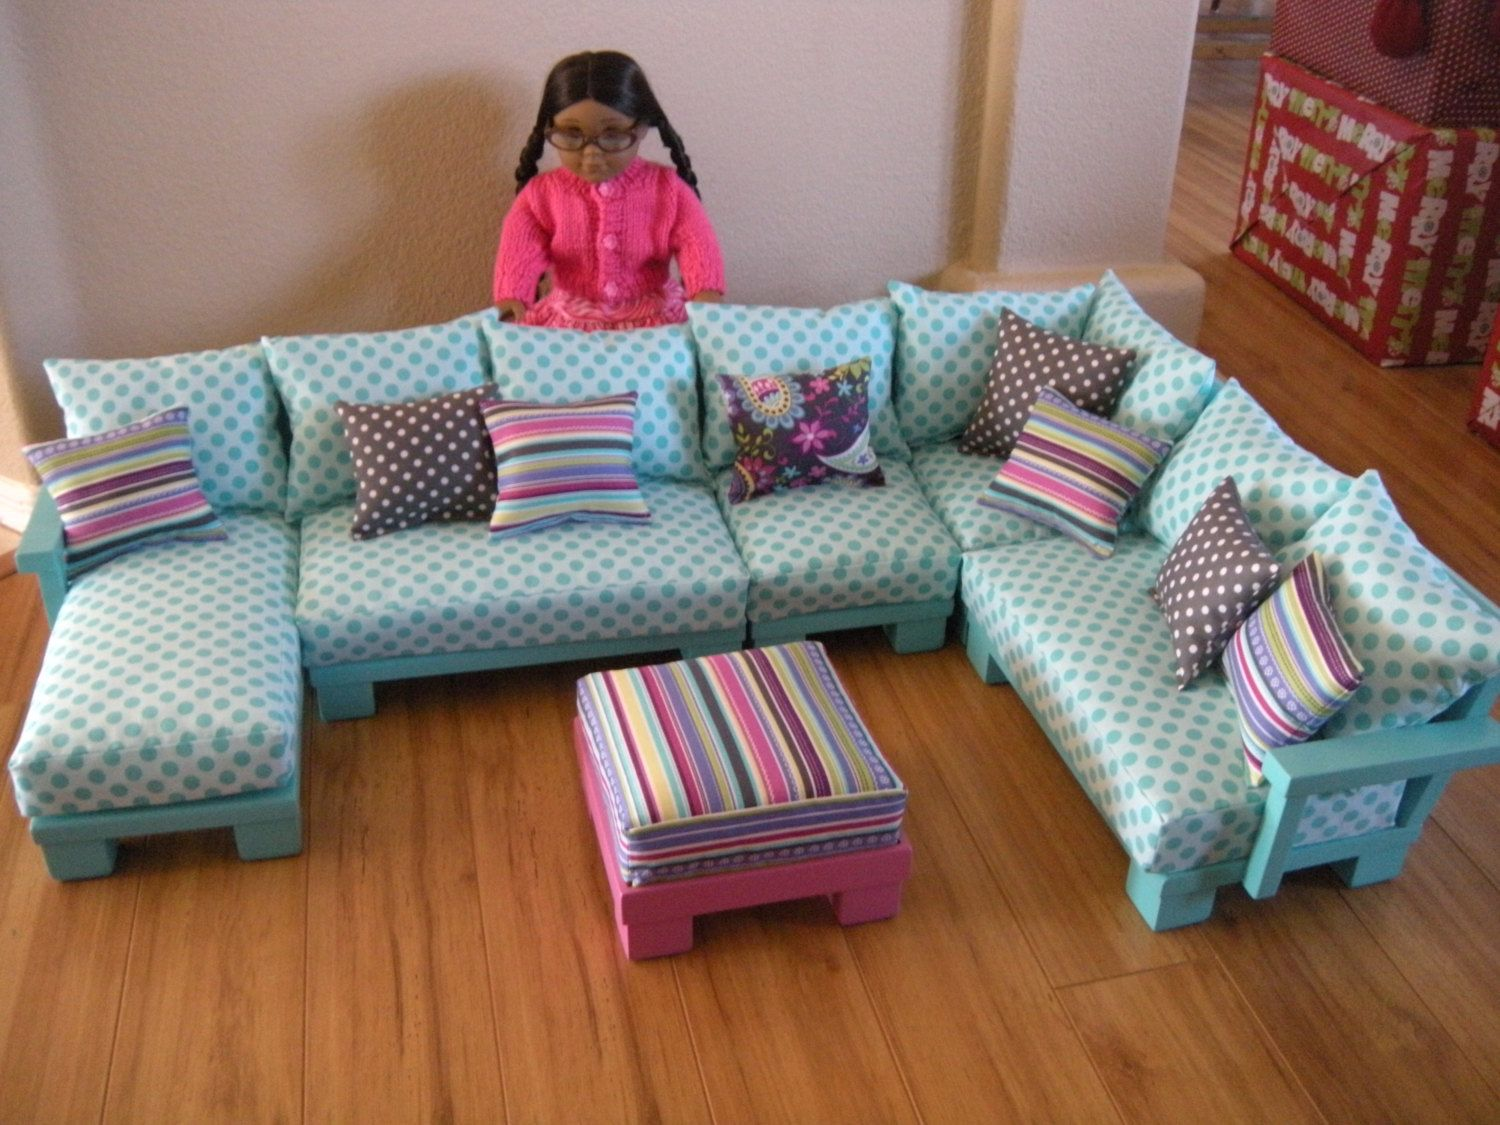 Charmant AVAILABLE IN FEBRUARY   Doll Couch Chairs Living Room Furniture Sectional  For American Girl Dolls Or 18 Inch Dolls (Josephine Set). $310.00, Via Etsy.